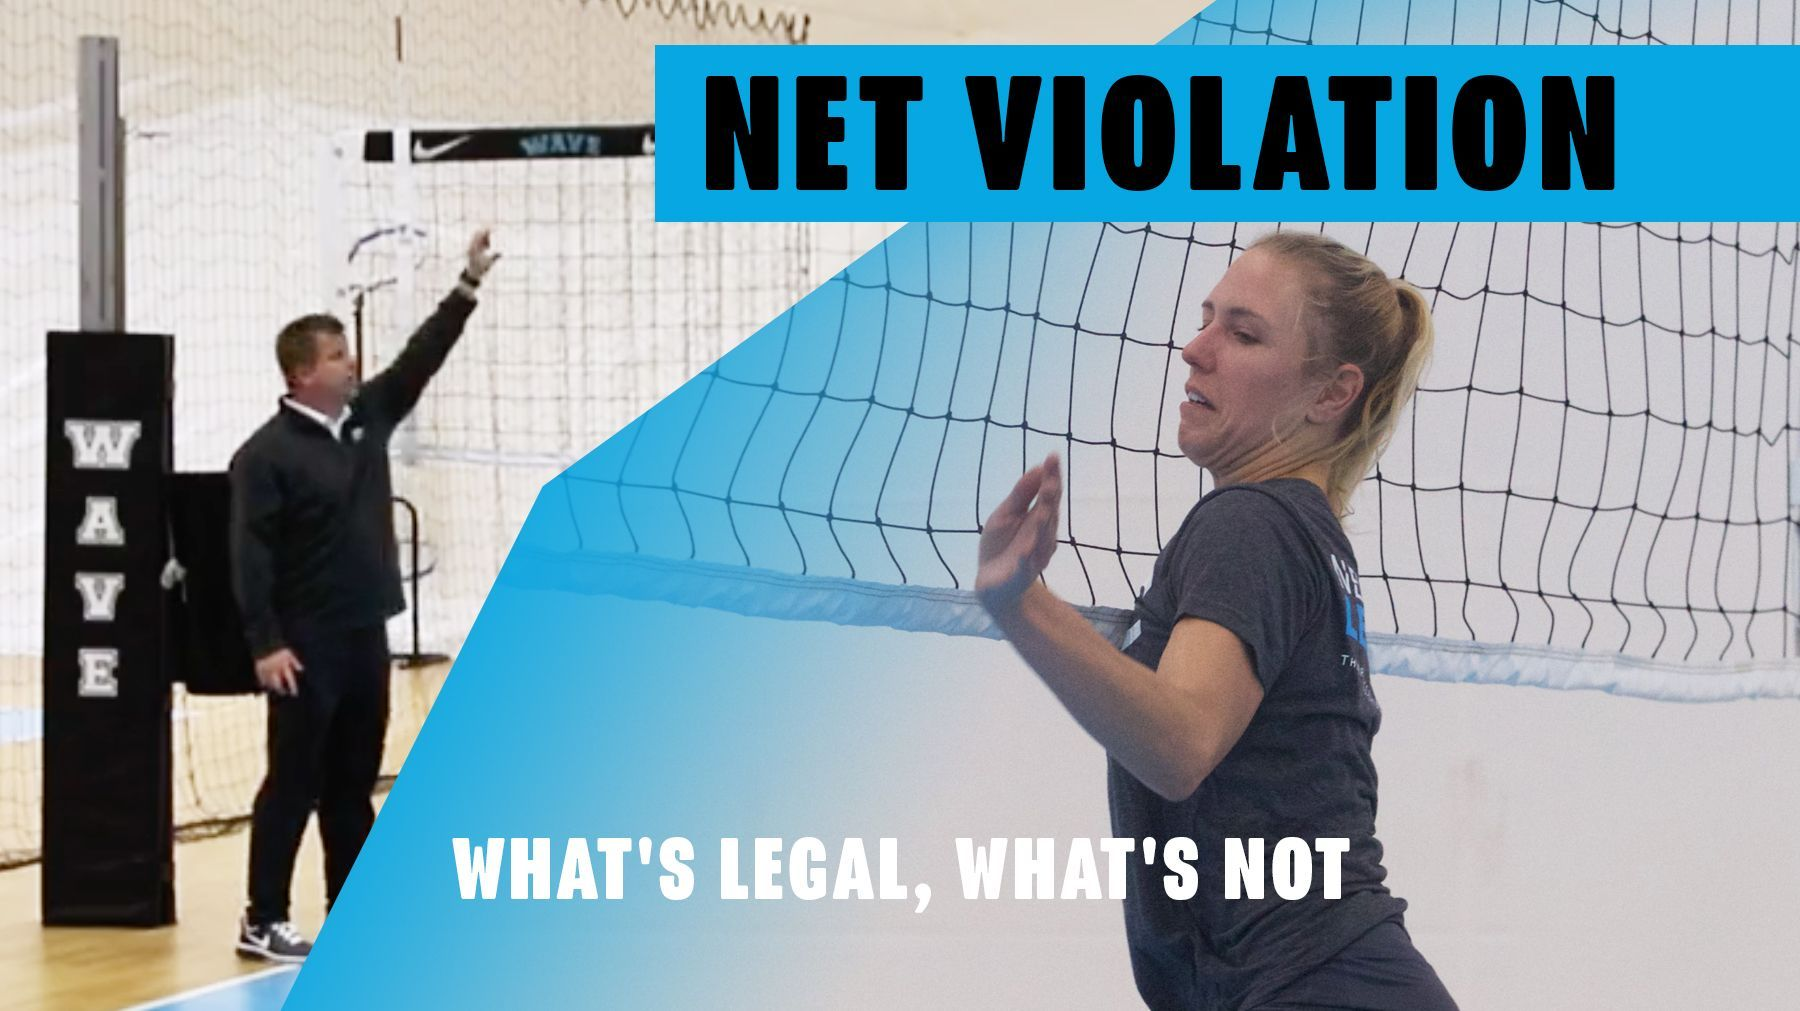 Net Violation What S Legal What S Not Coaching Volleyball How To Play Tennis Tennis Clubs